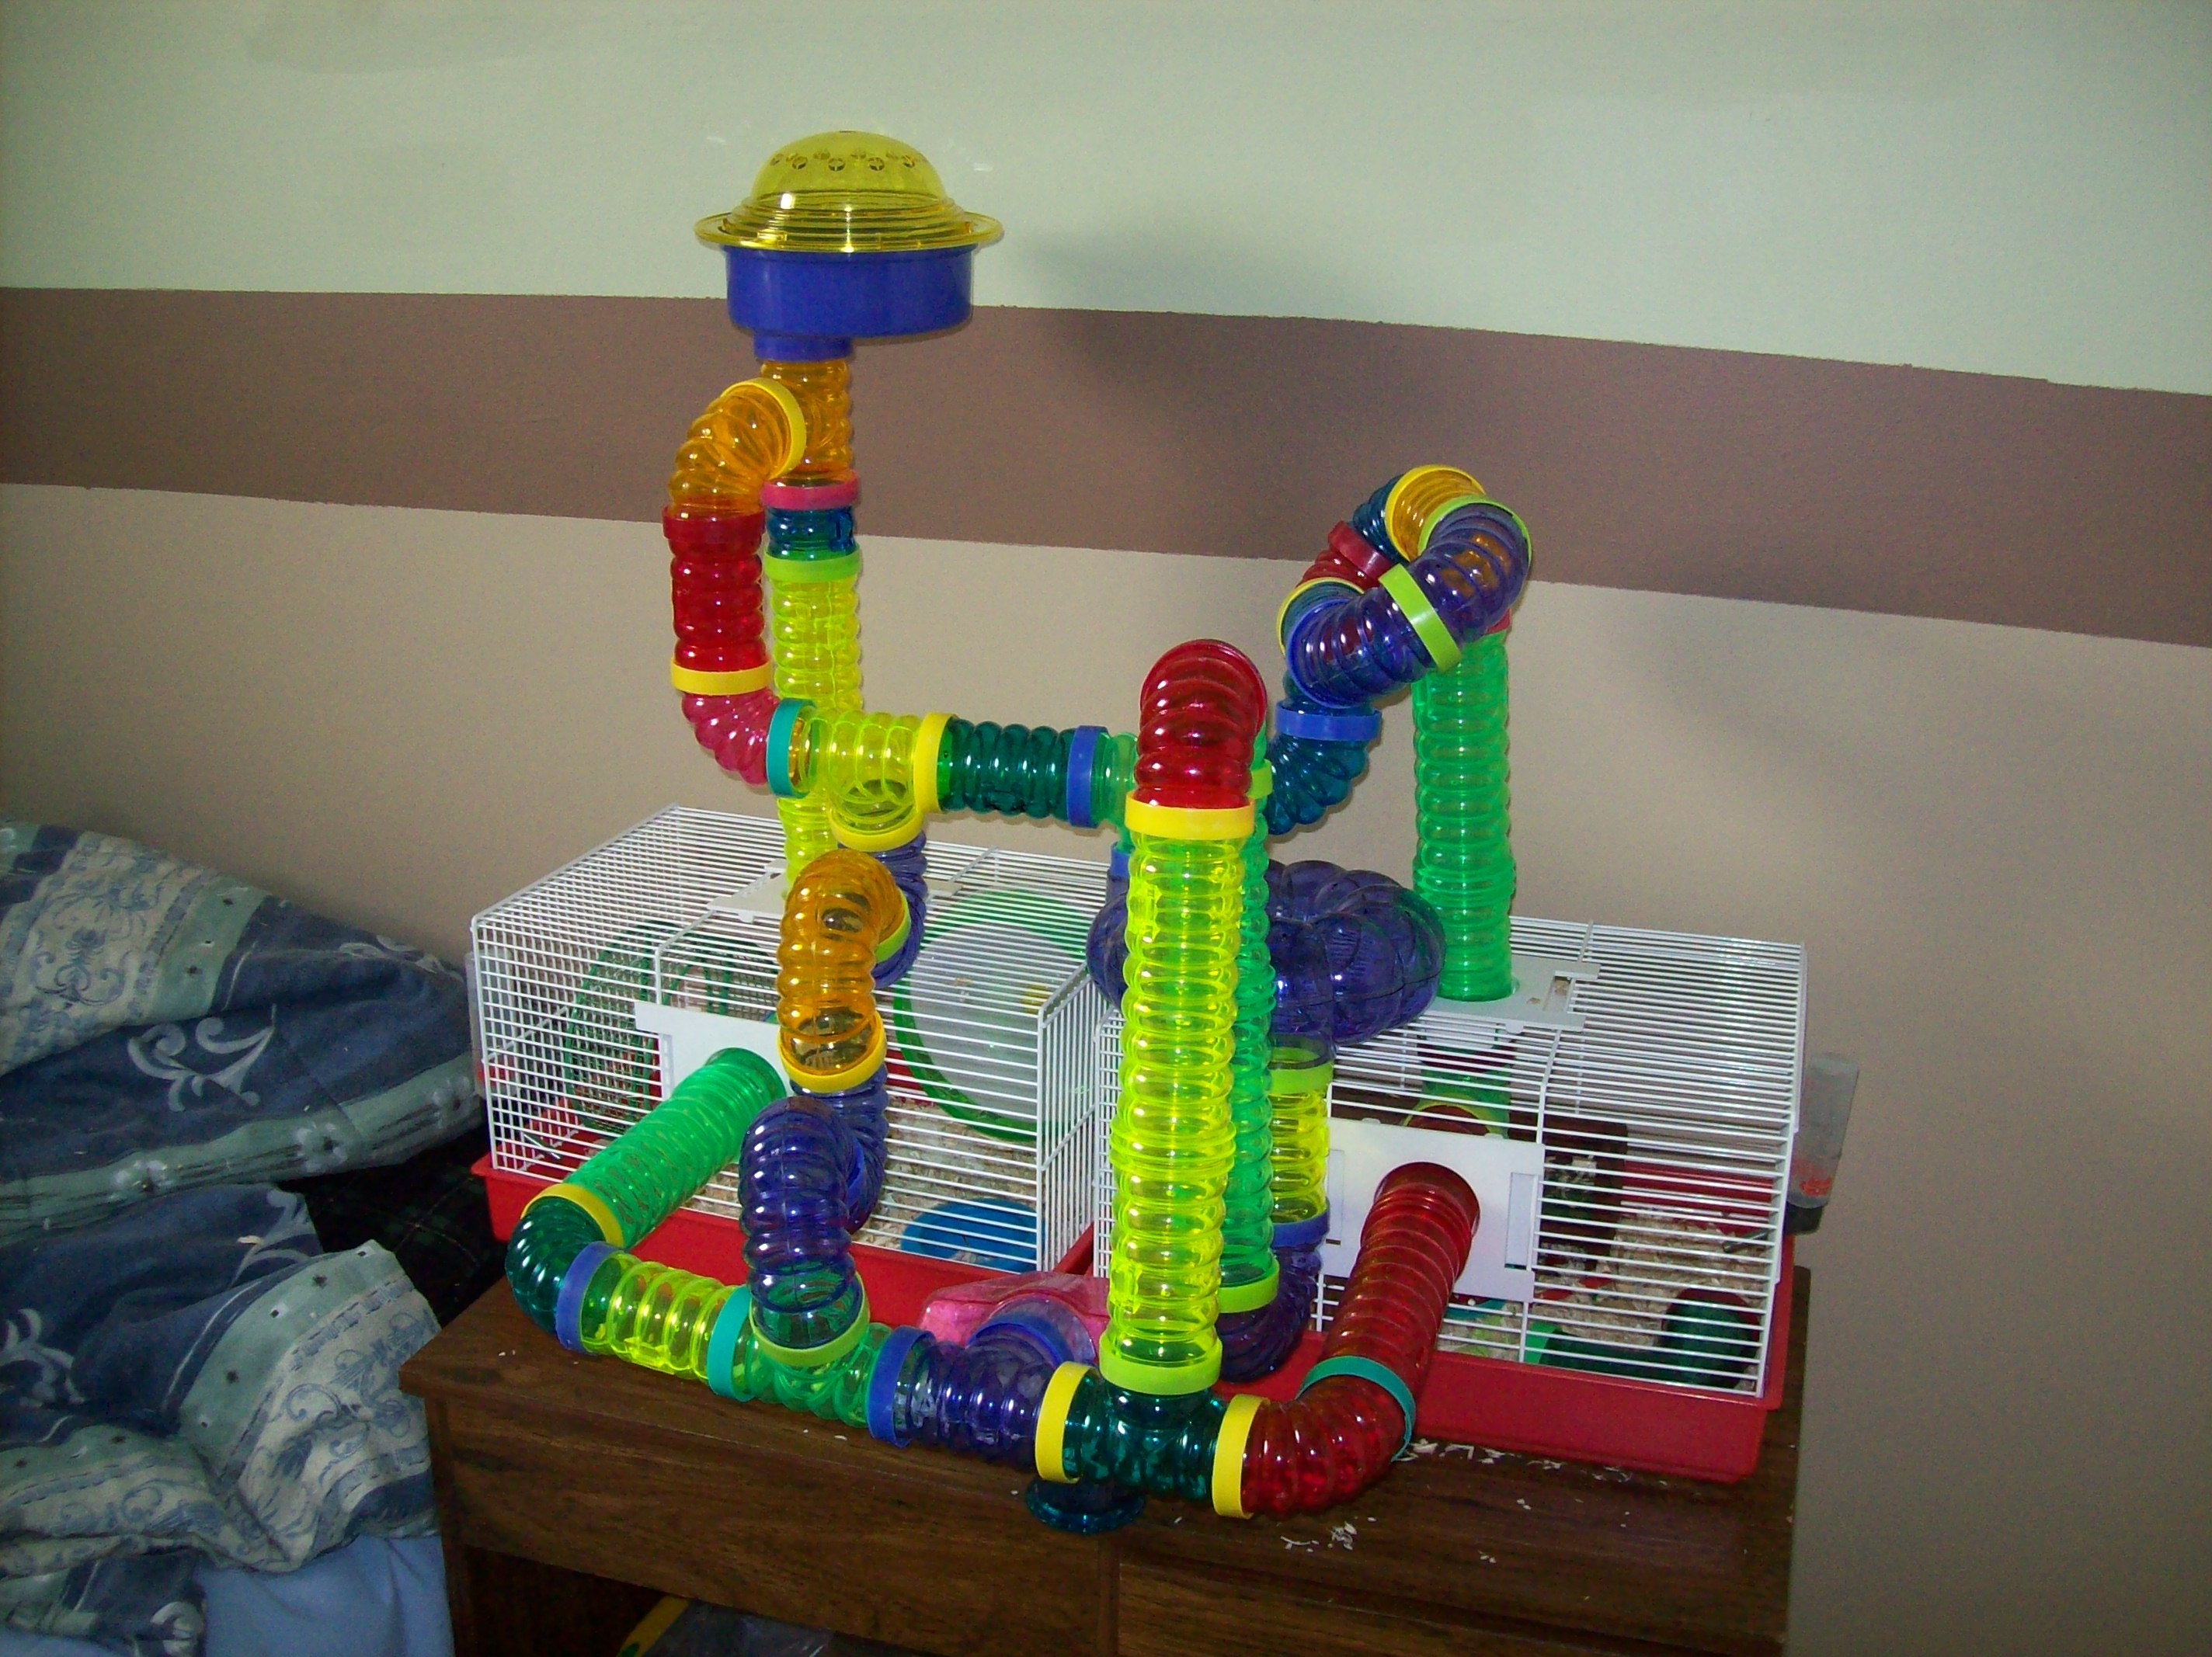 Hamtaro's Current Cage Configuration